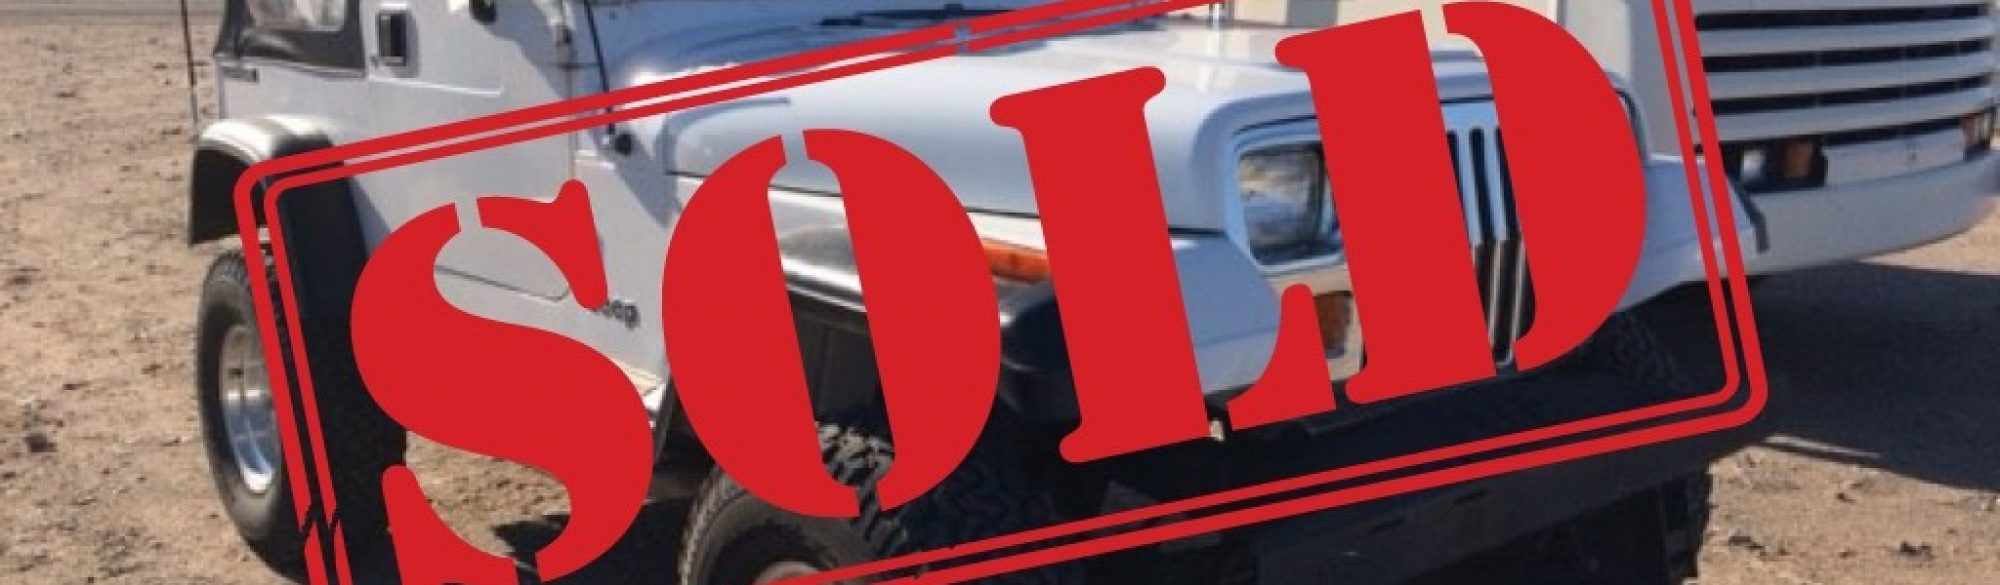 Sold Jeep